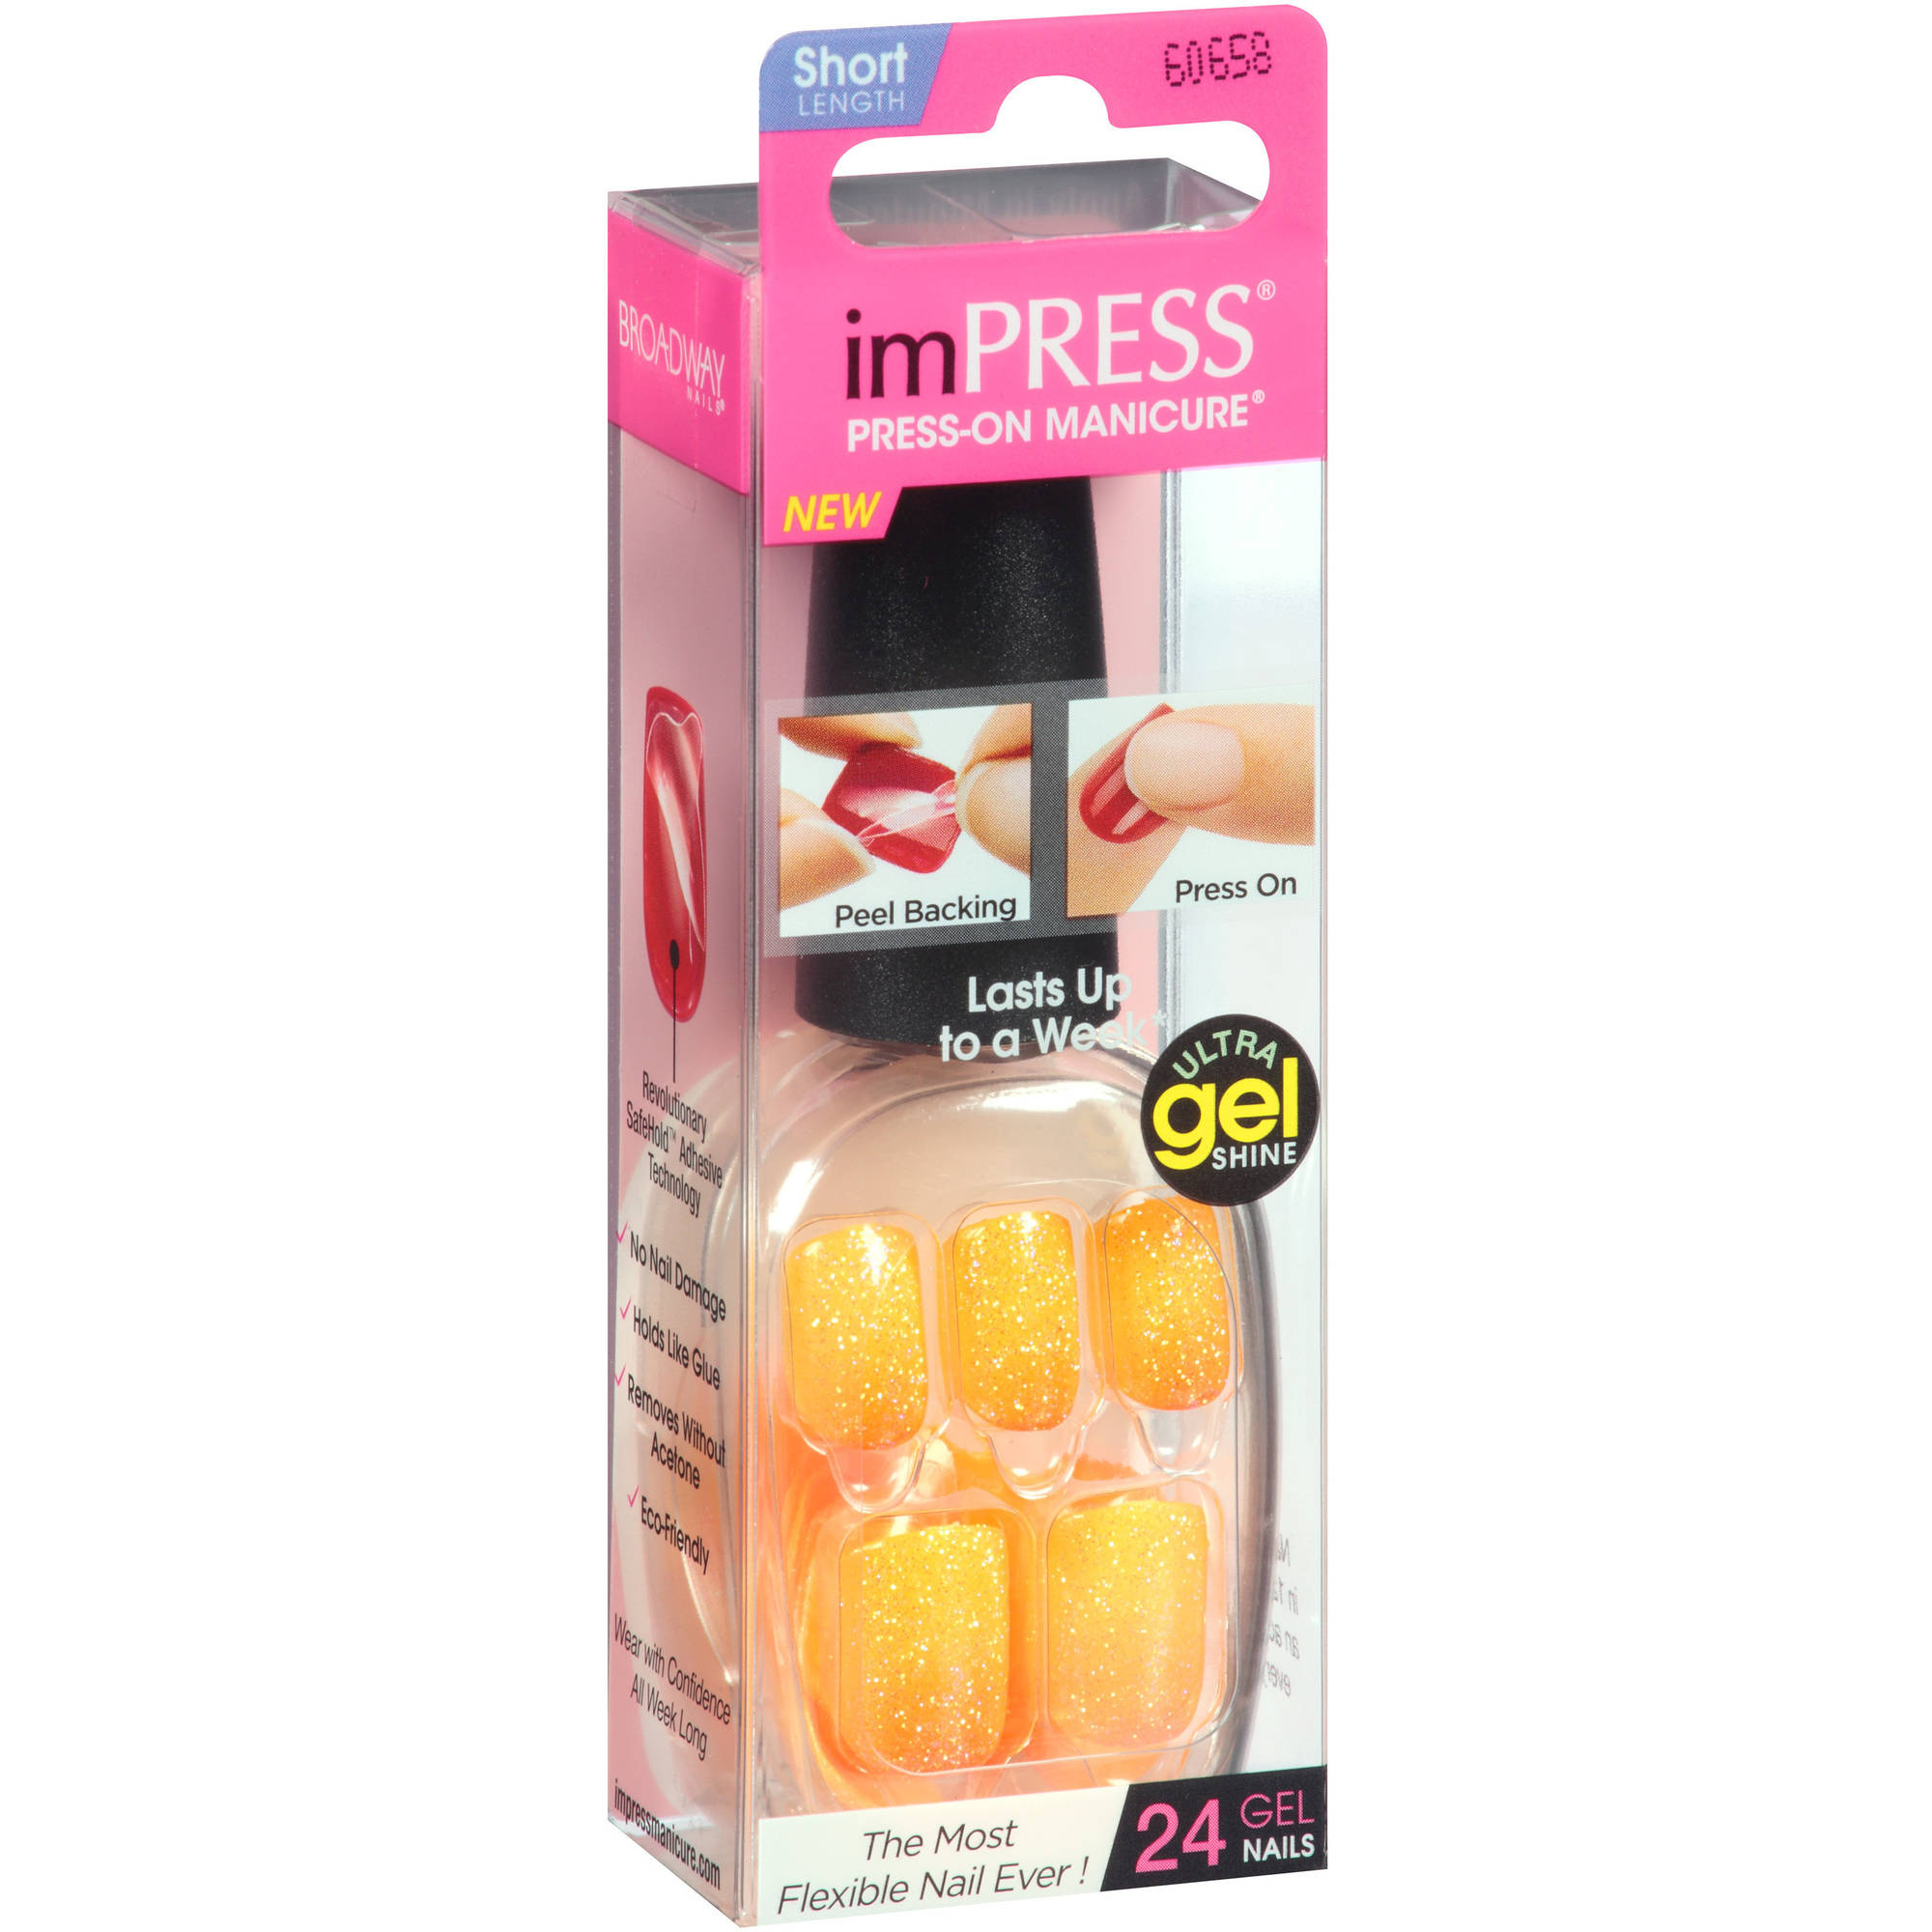 Broadway Nails Short Length imPress Press-On Manicure, 60658 In the Spotlight, 24 count